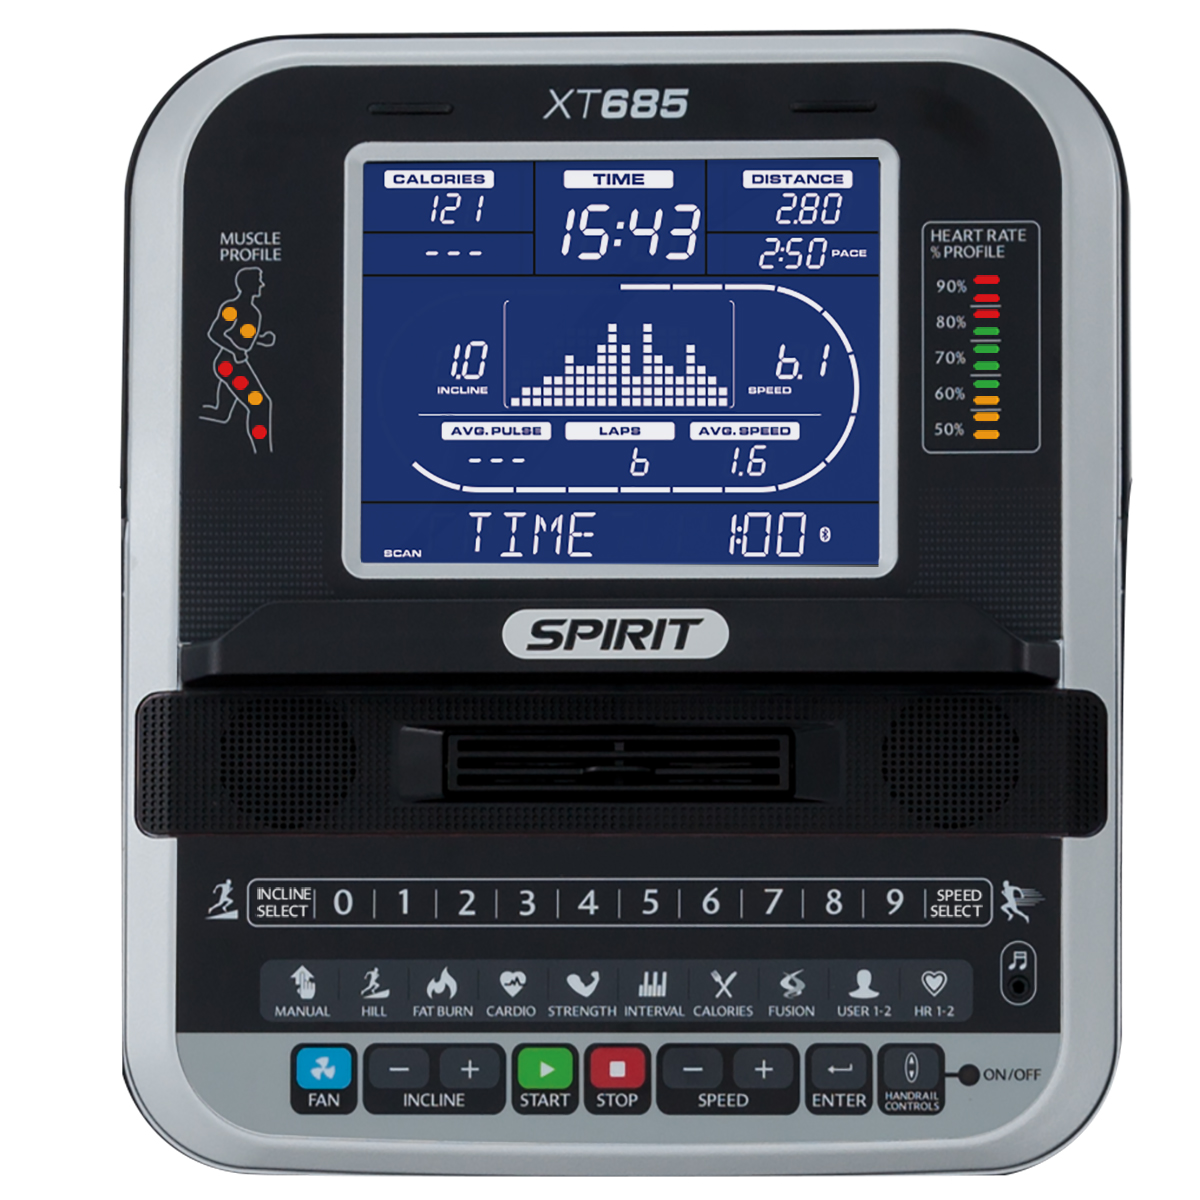 Spirit Fitness XT685 treadmill monitor with blue backlit LCD and multi-coloured indicator lights